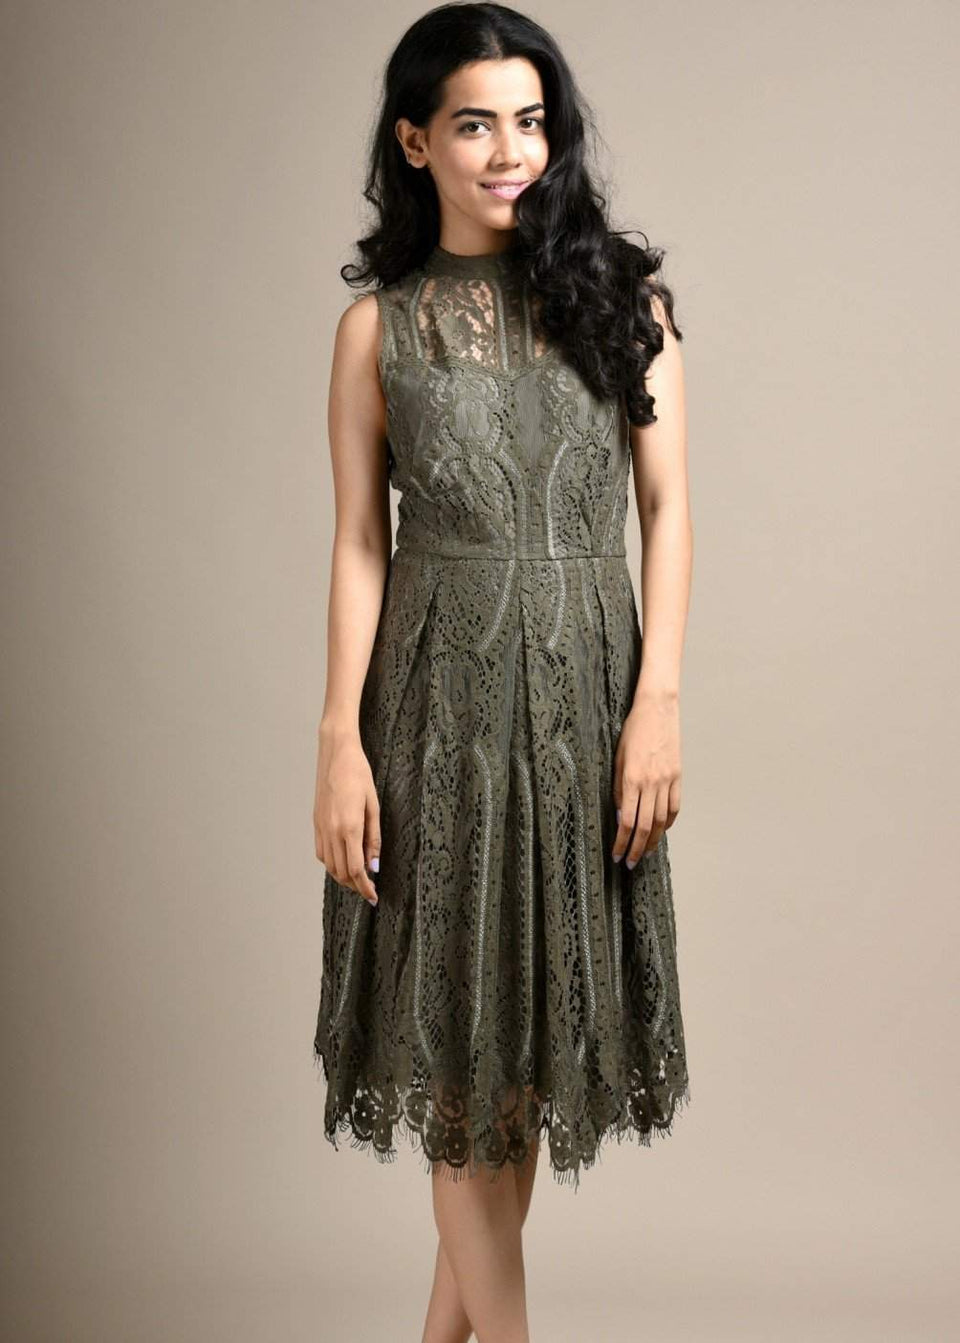 CLASSIC THREAD Spill The Beans Lace Midi Dress - Green